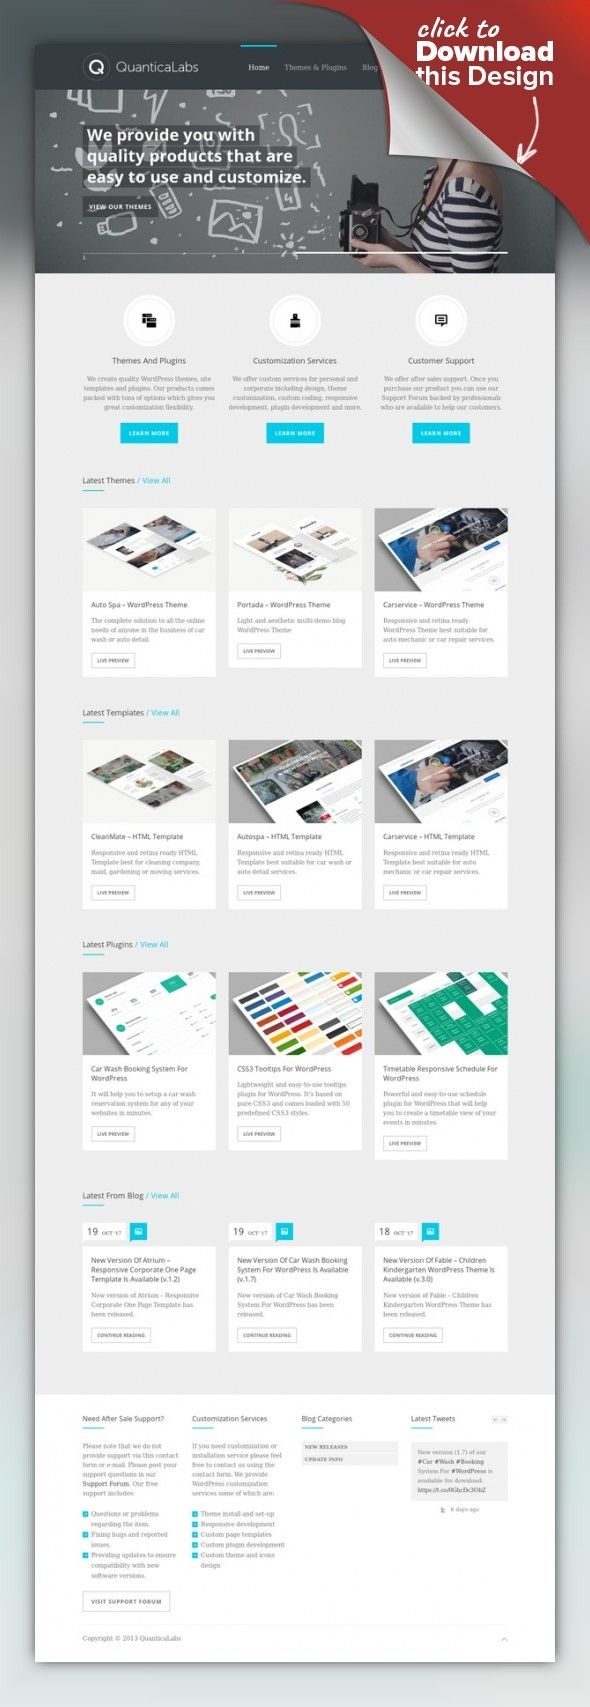 Cascade - Personal vCard WordPress Theme blog, clean, contact form, curriculum vitae, cv, dark, light, menu, minimalist, modern, personal profile, portfolio, resume, vcard, widget Latest Version: 21.07.2016 – v7.7. Check the changelog Cascade is a minimalistic personal vCard WordPress Theme based on colorful vertical menu tabs. Tabs are presenting content of the pages. Each page is a single tab. The Theme comes loaded with dark and light ski...